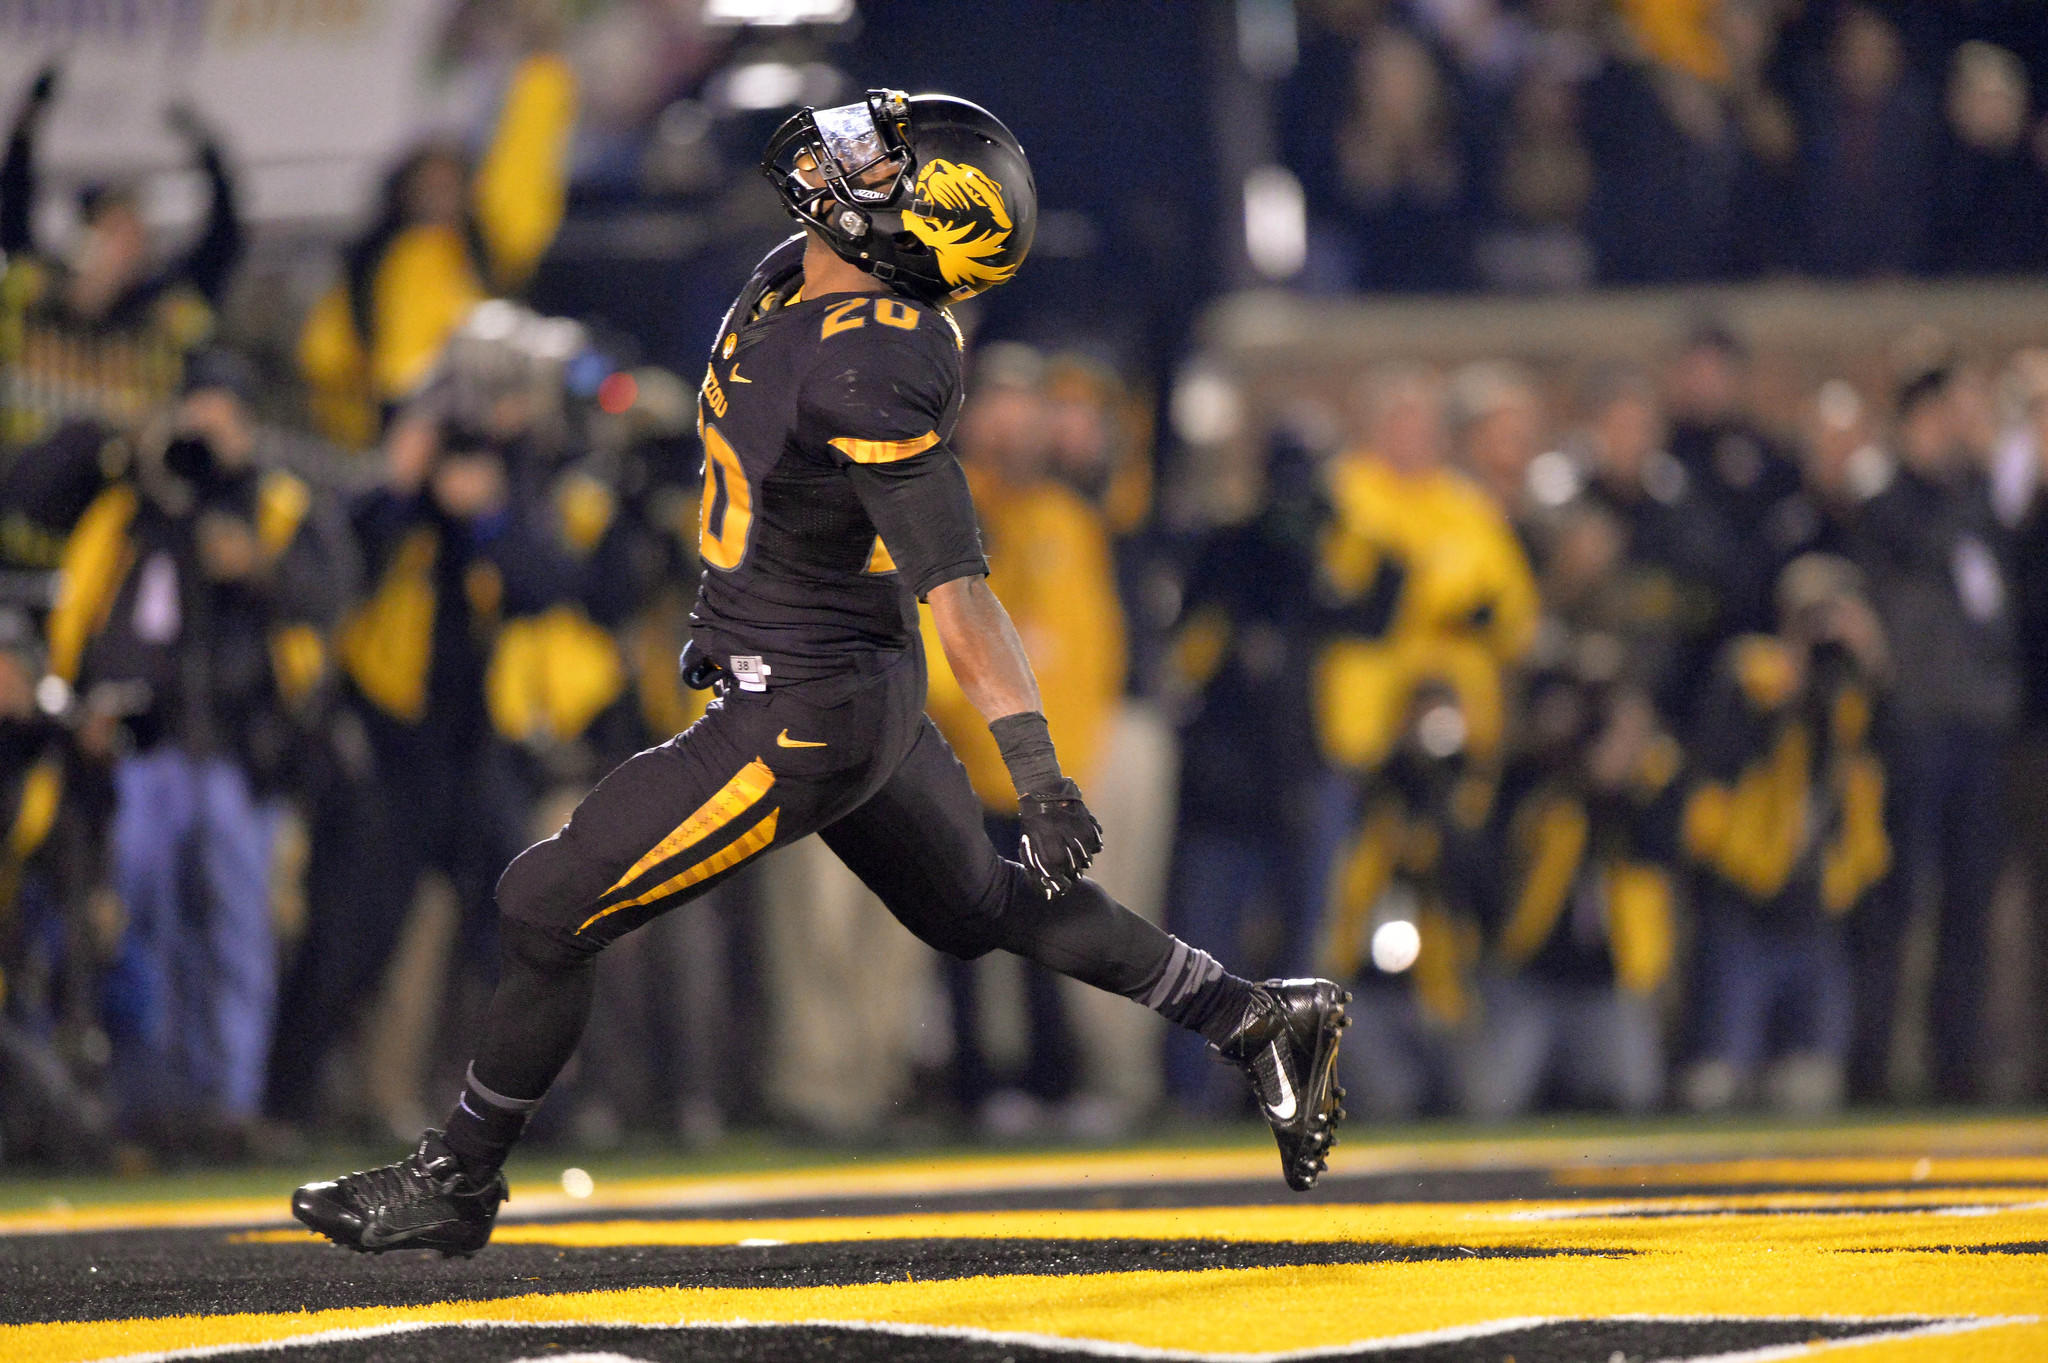 Missouri running back Henry Josey celebrates after rushing 57-yards for a touchdown against Texas A&M.